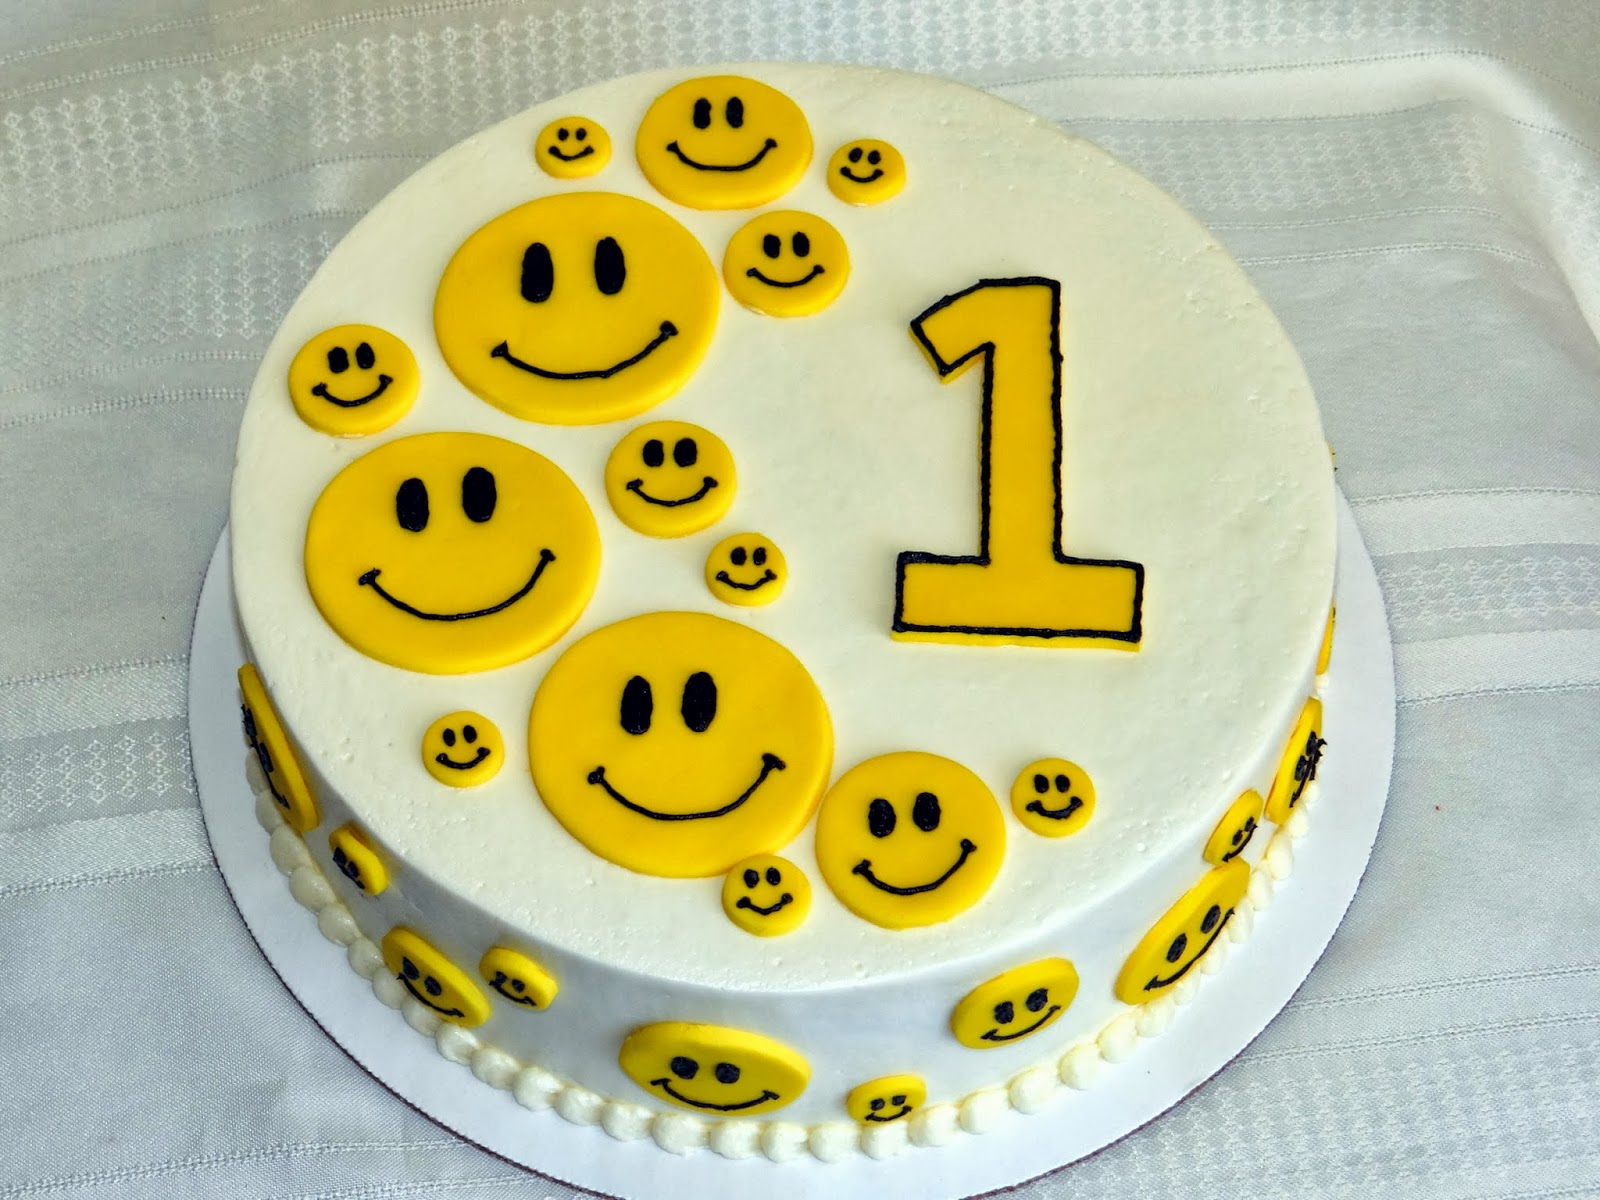 Smiley clipart cake Birthday Customized Cake Cake Happy